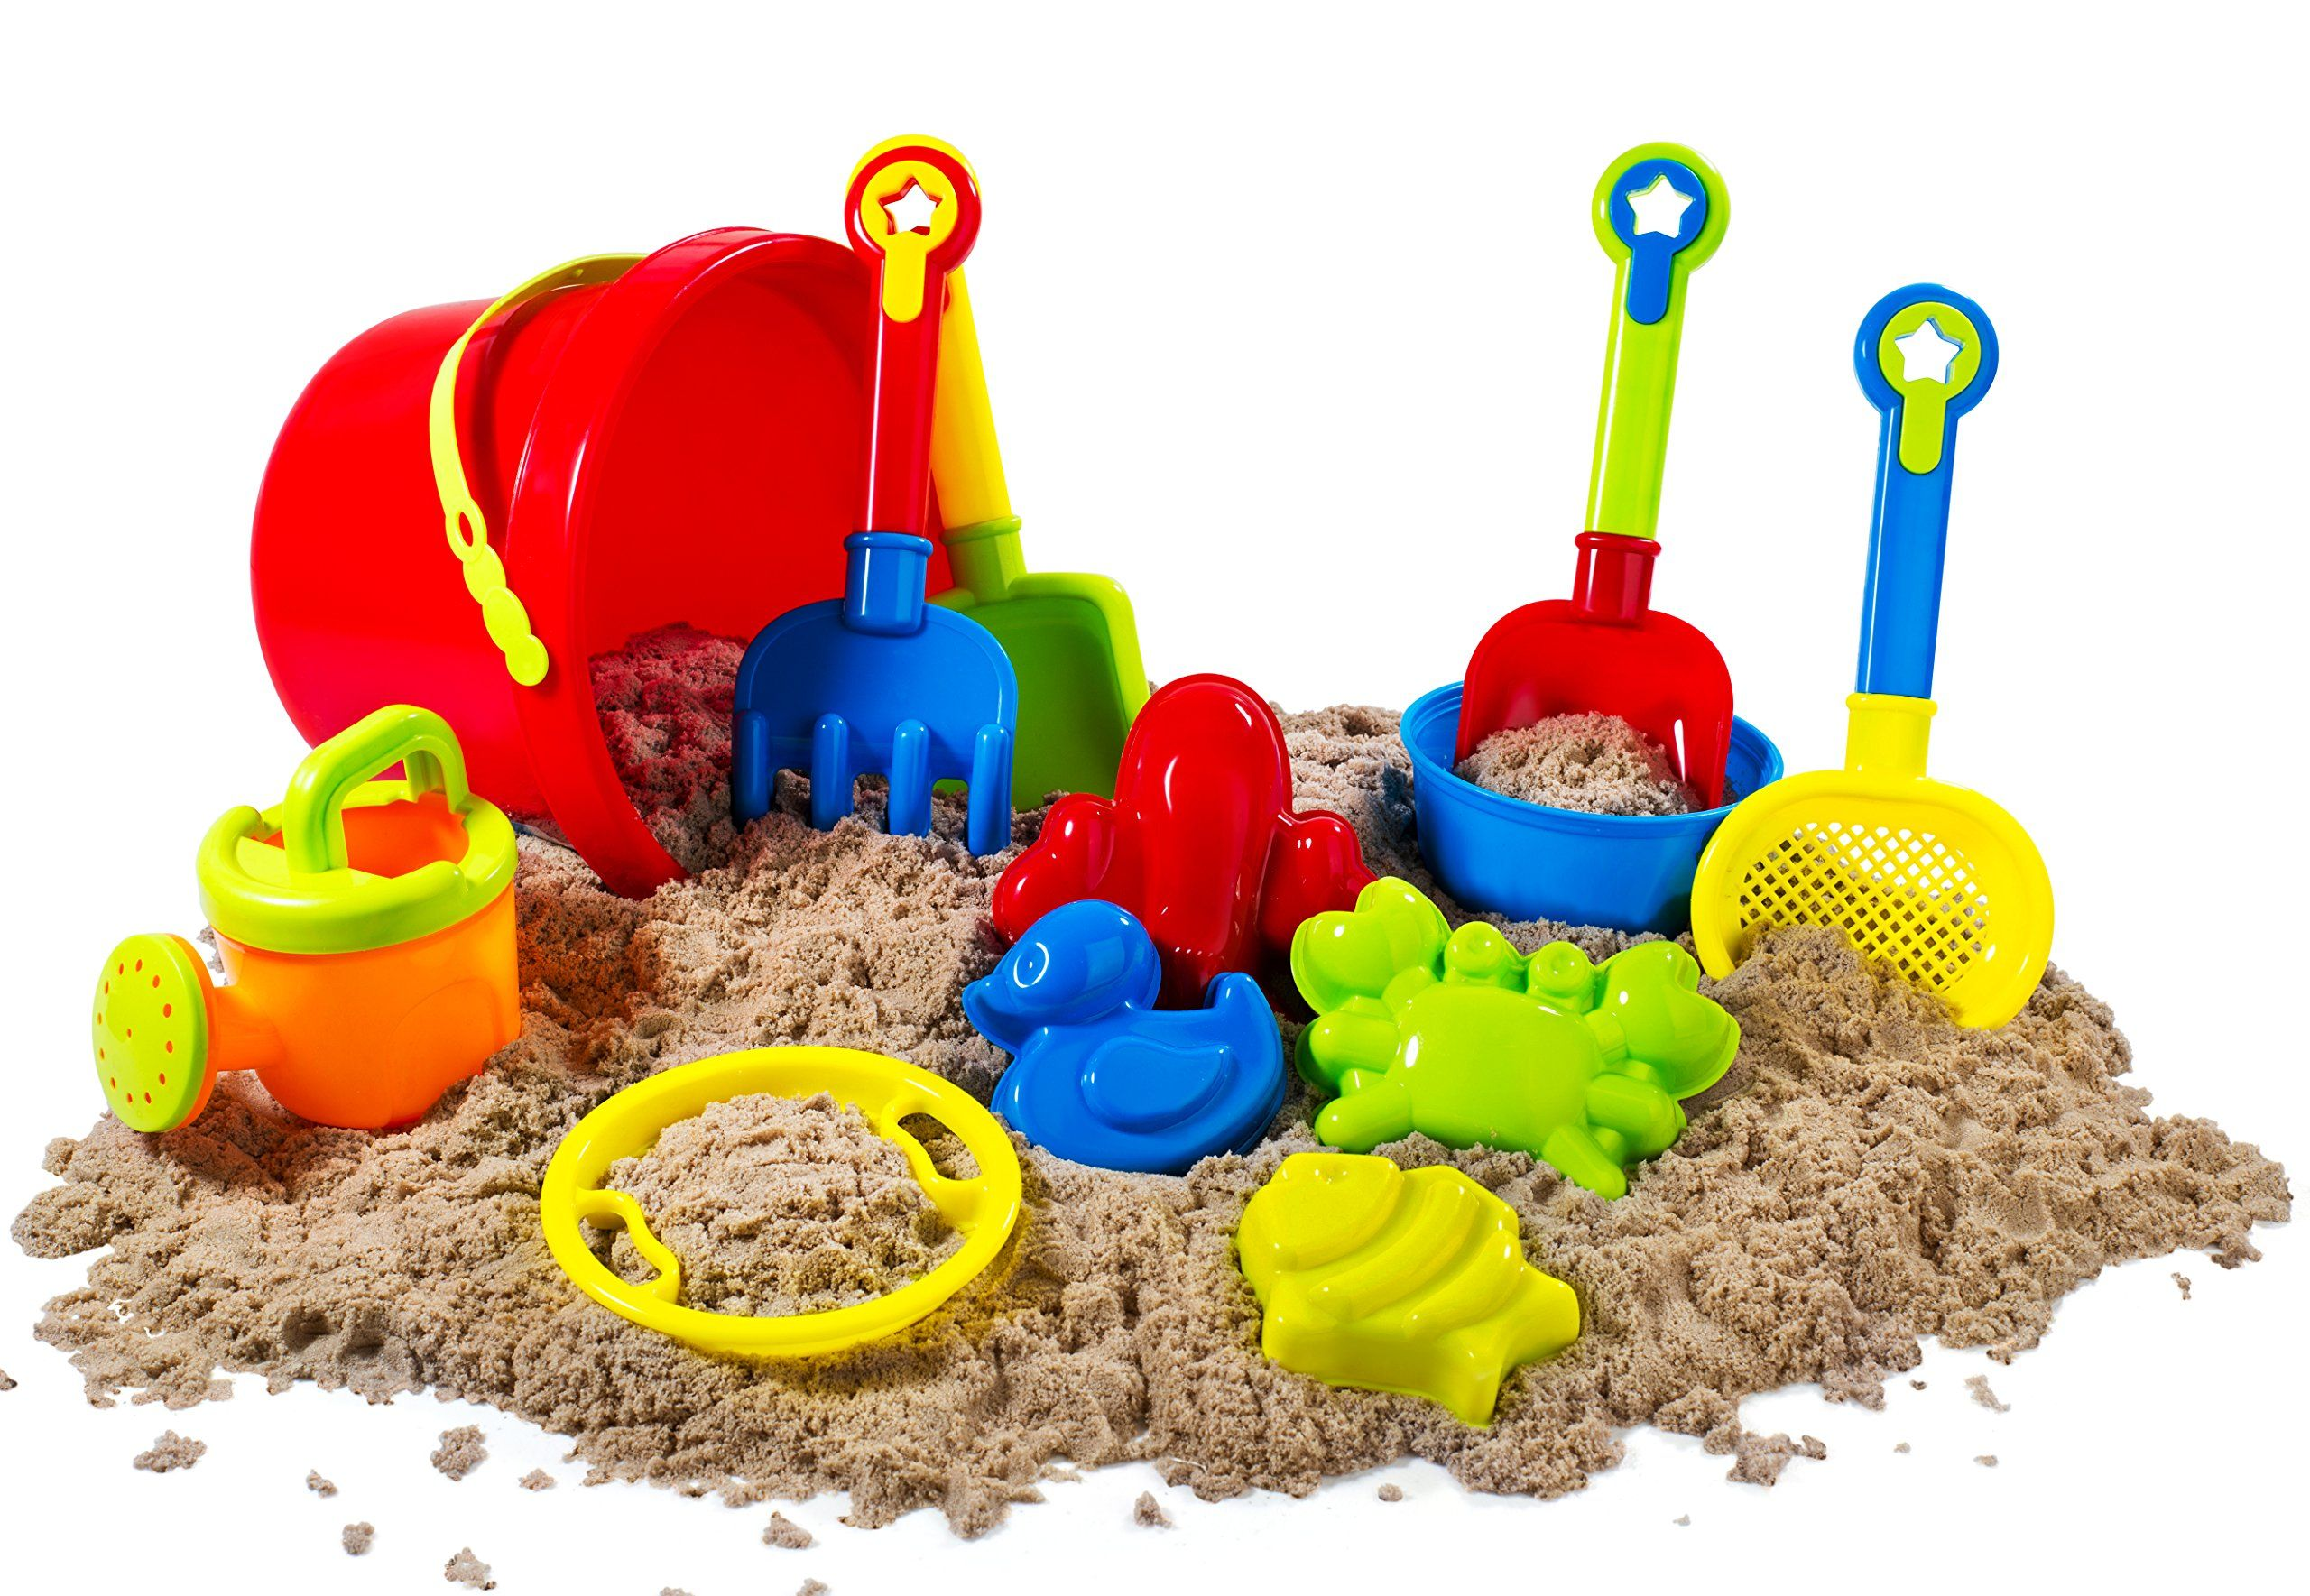 Big 12 Pcs Beach Toy Sand Set For Kids Sand Play Set With Bucket